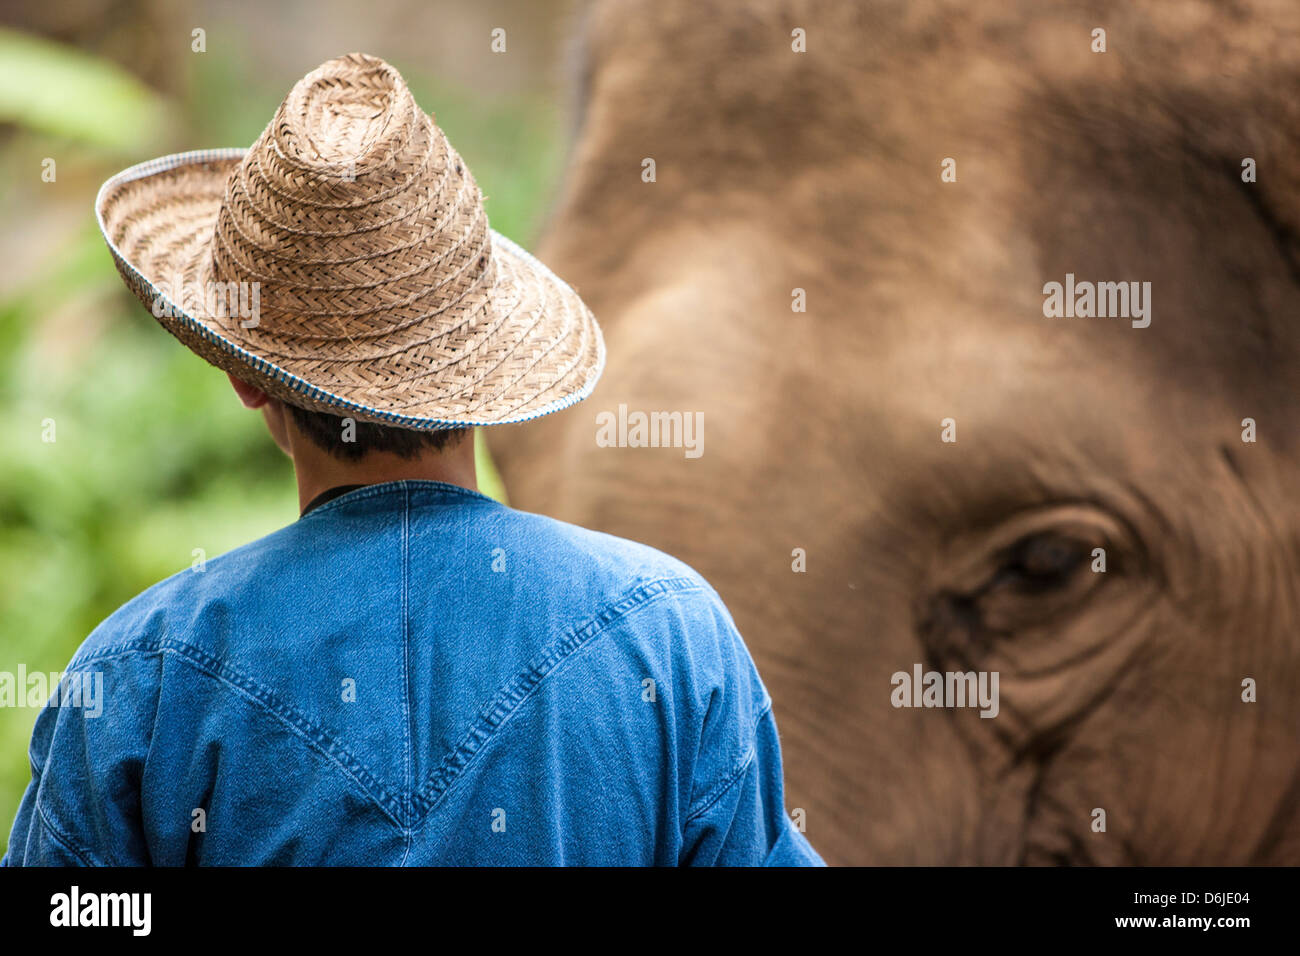 Four Seasons Elephant Camp, Northern Thailand, Southeast Asia, Asia - Stock Image